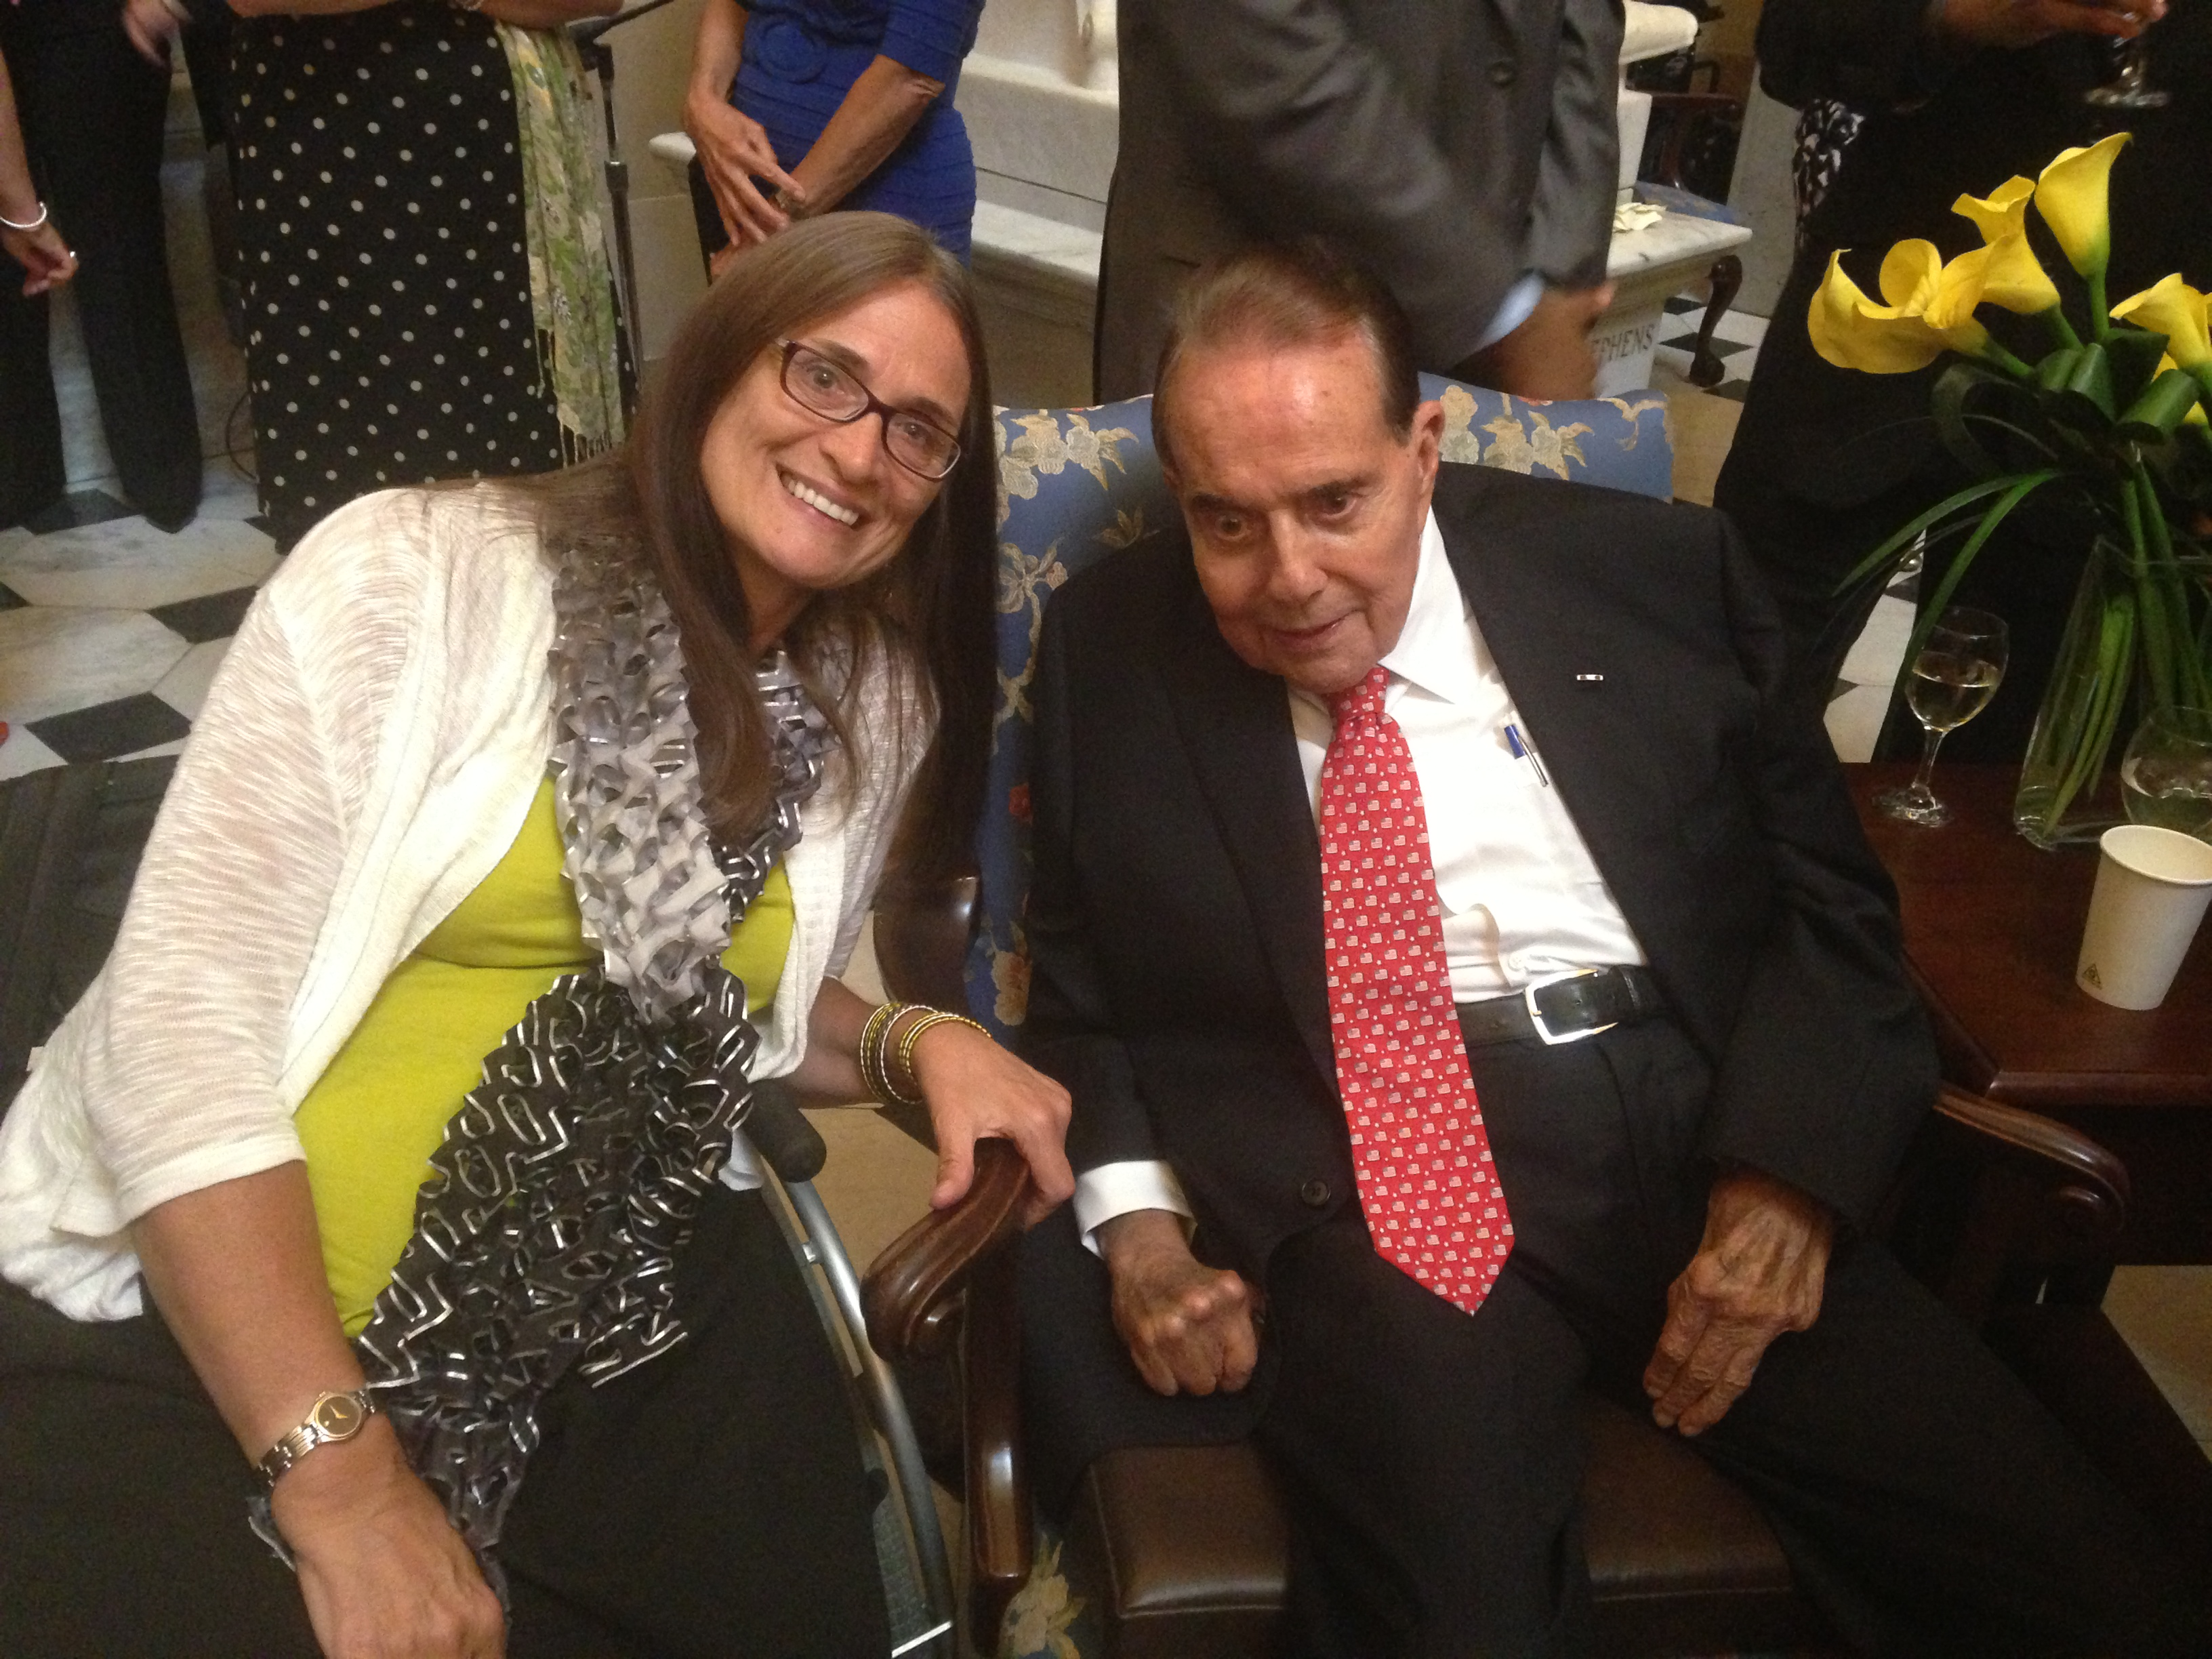 A woman and a man in a suit, both in wheelchairs, lean in and smile at the camera